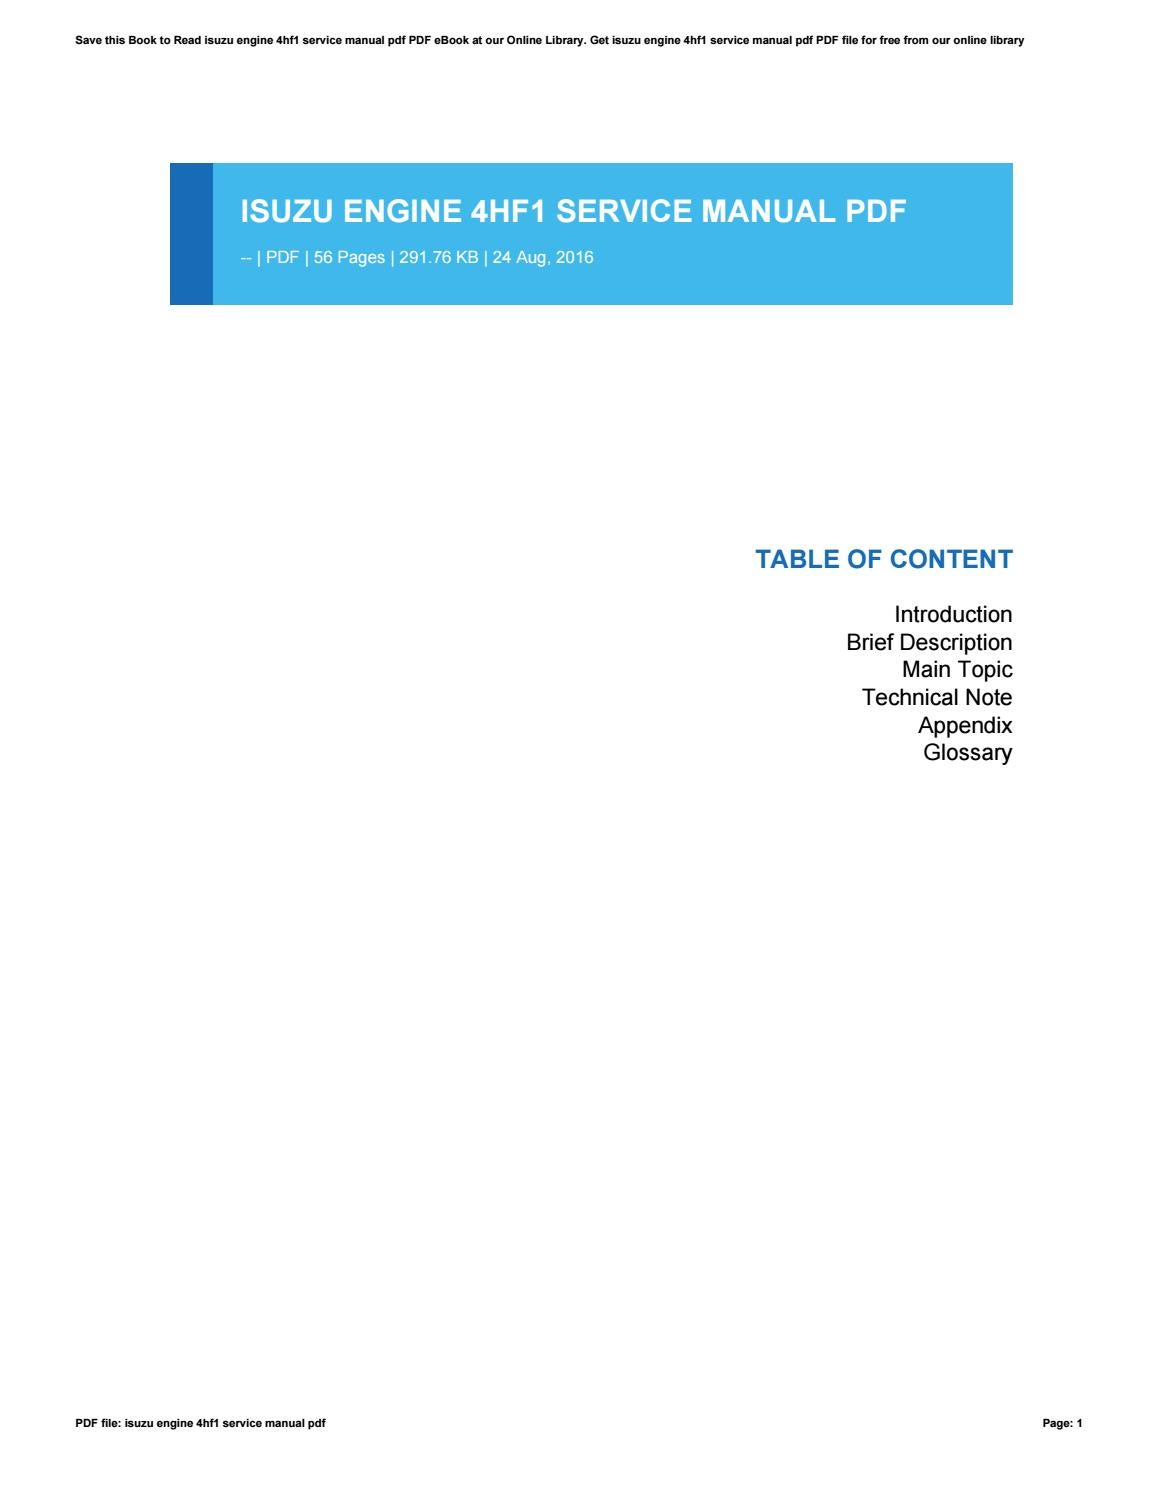 Isuzu Engine Service Manual - Автомобили и Машины